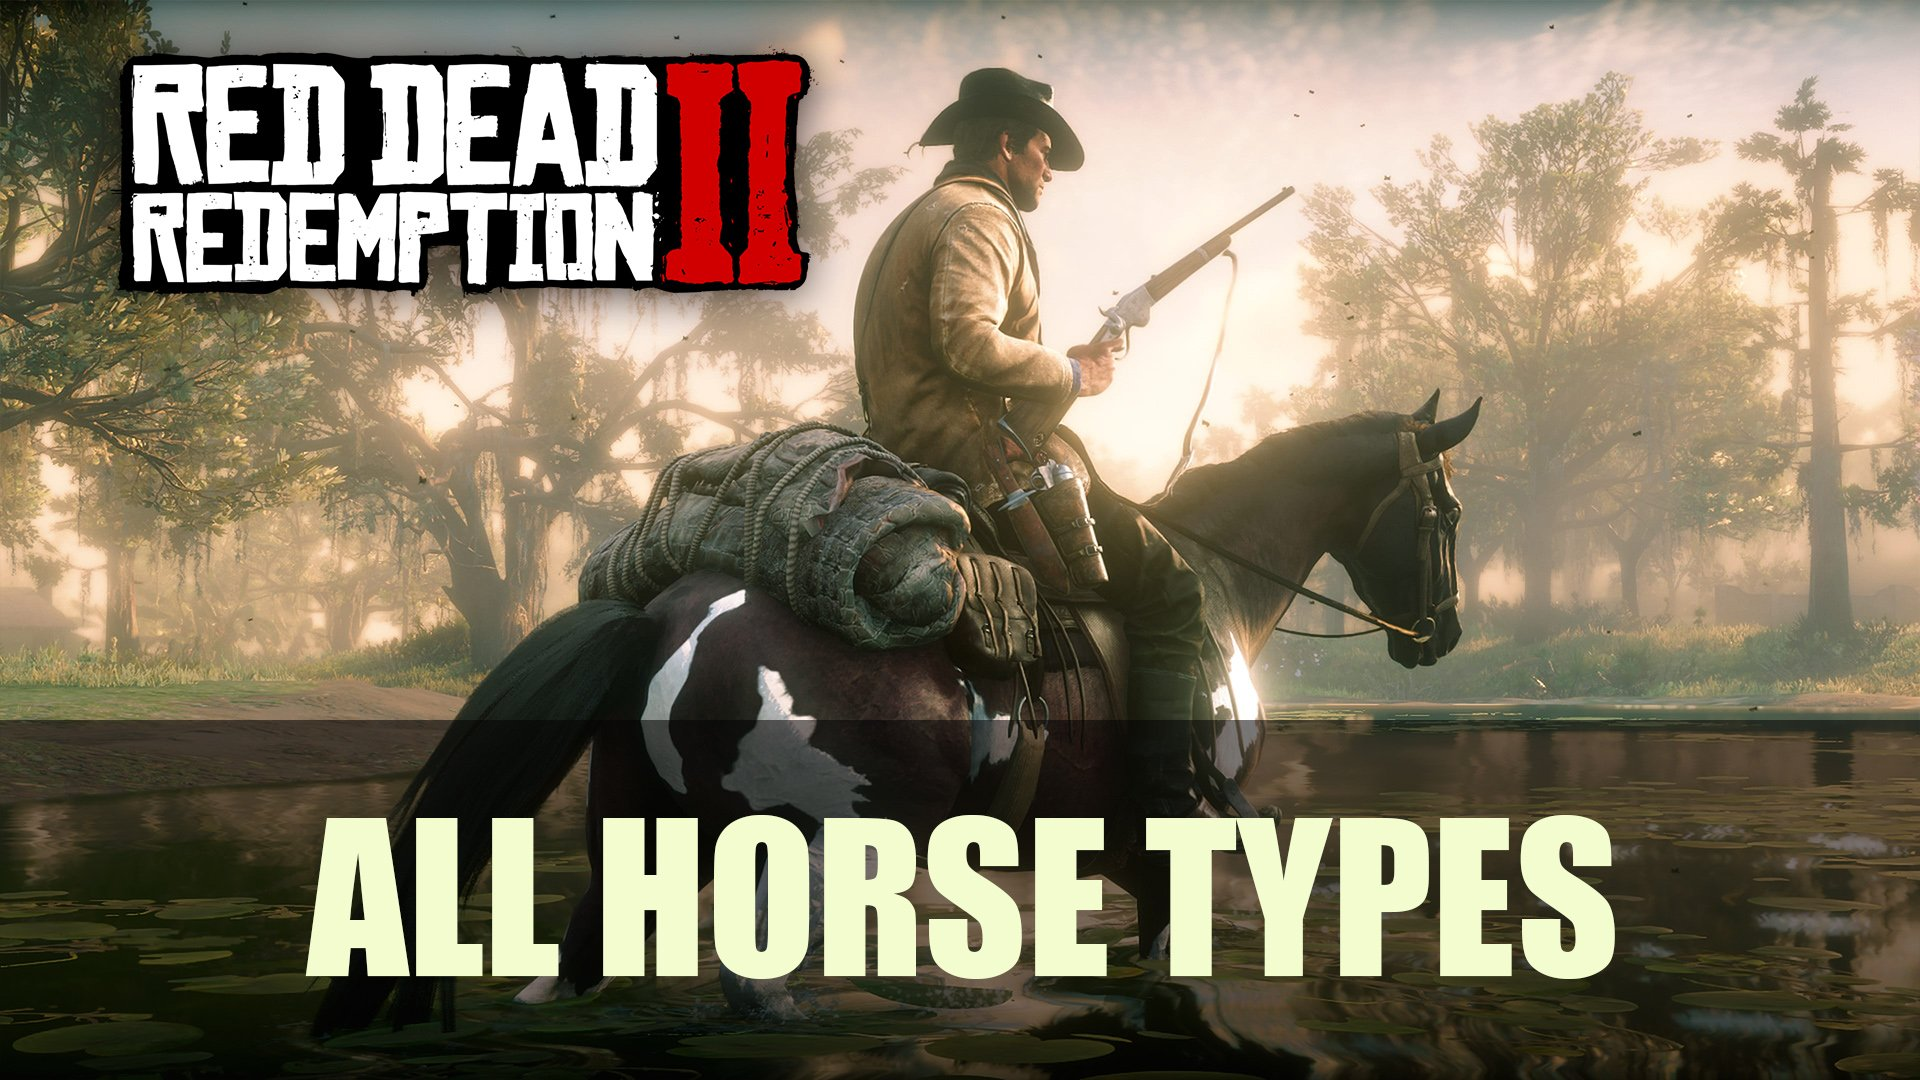 Red Dead Redemption 2 All Horse Types Guide Fextralife